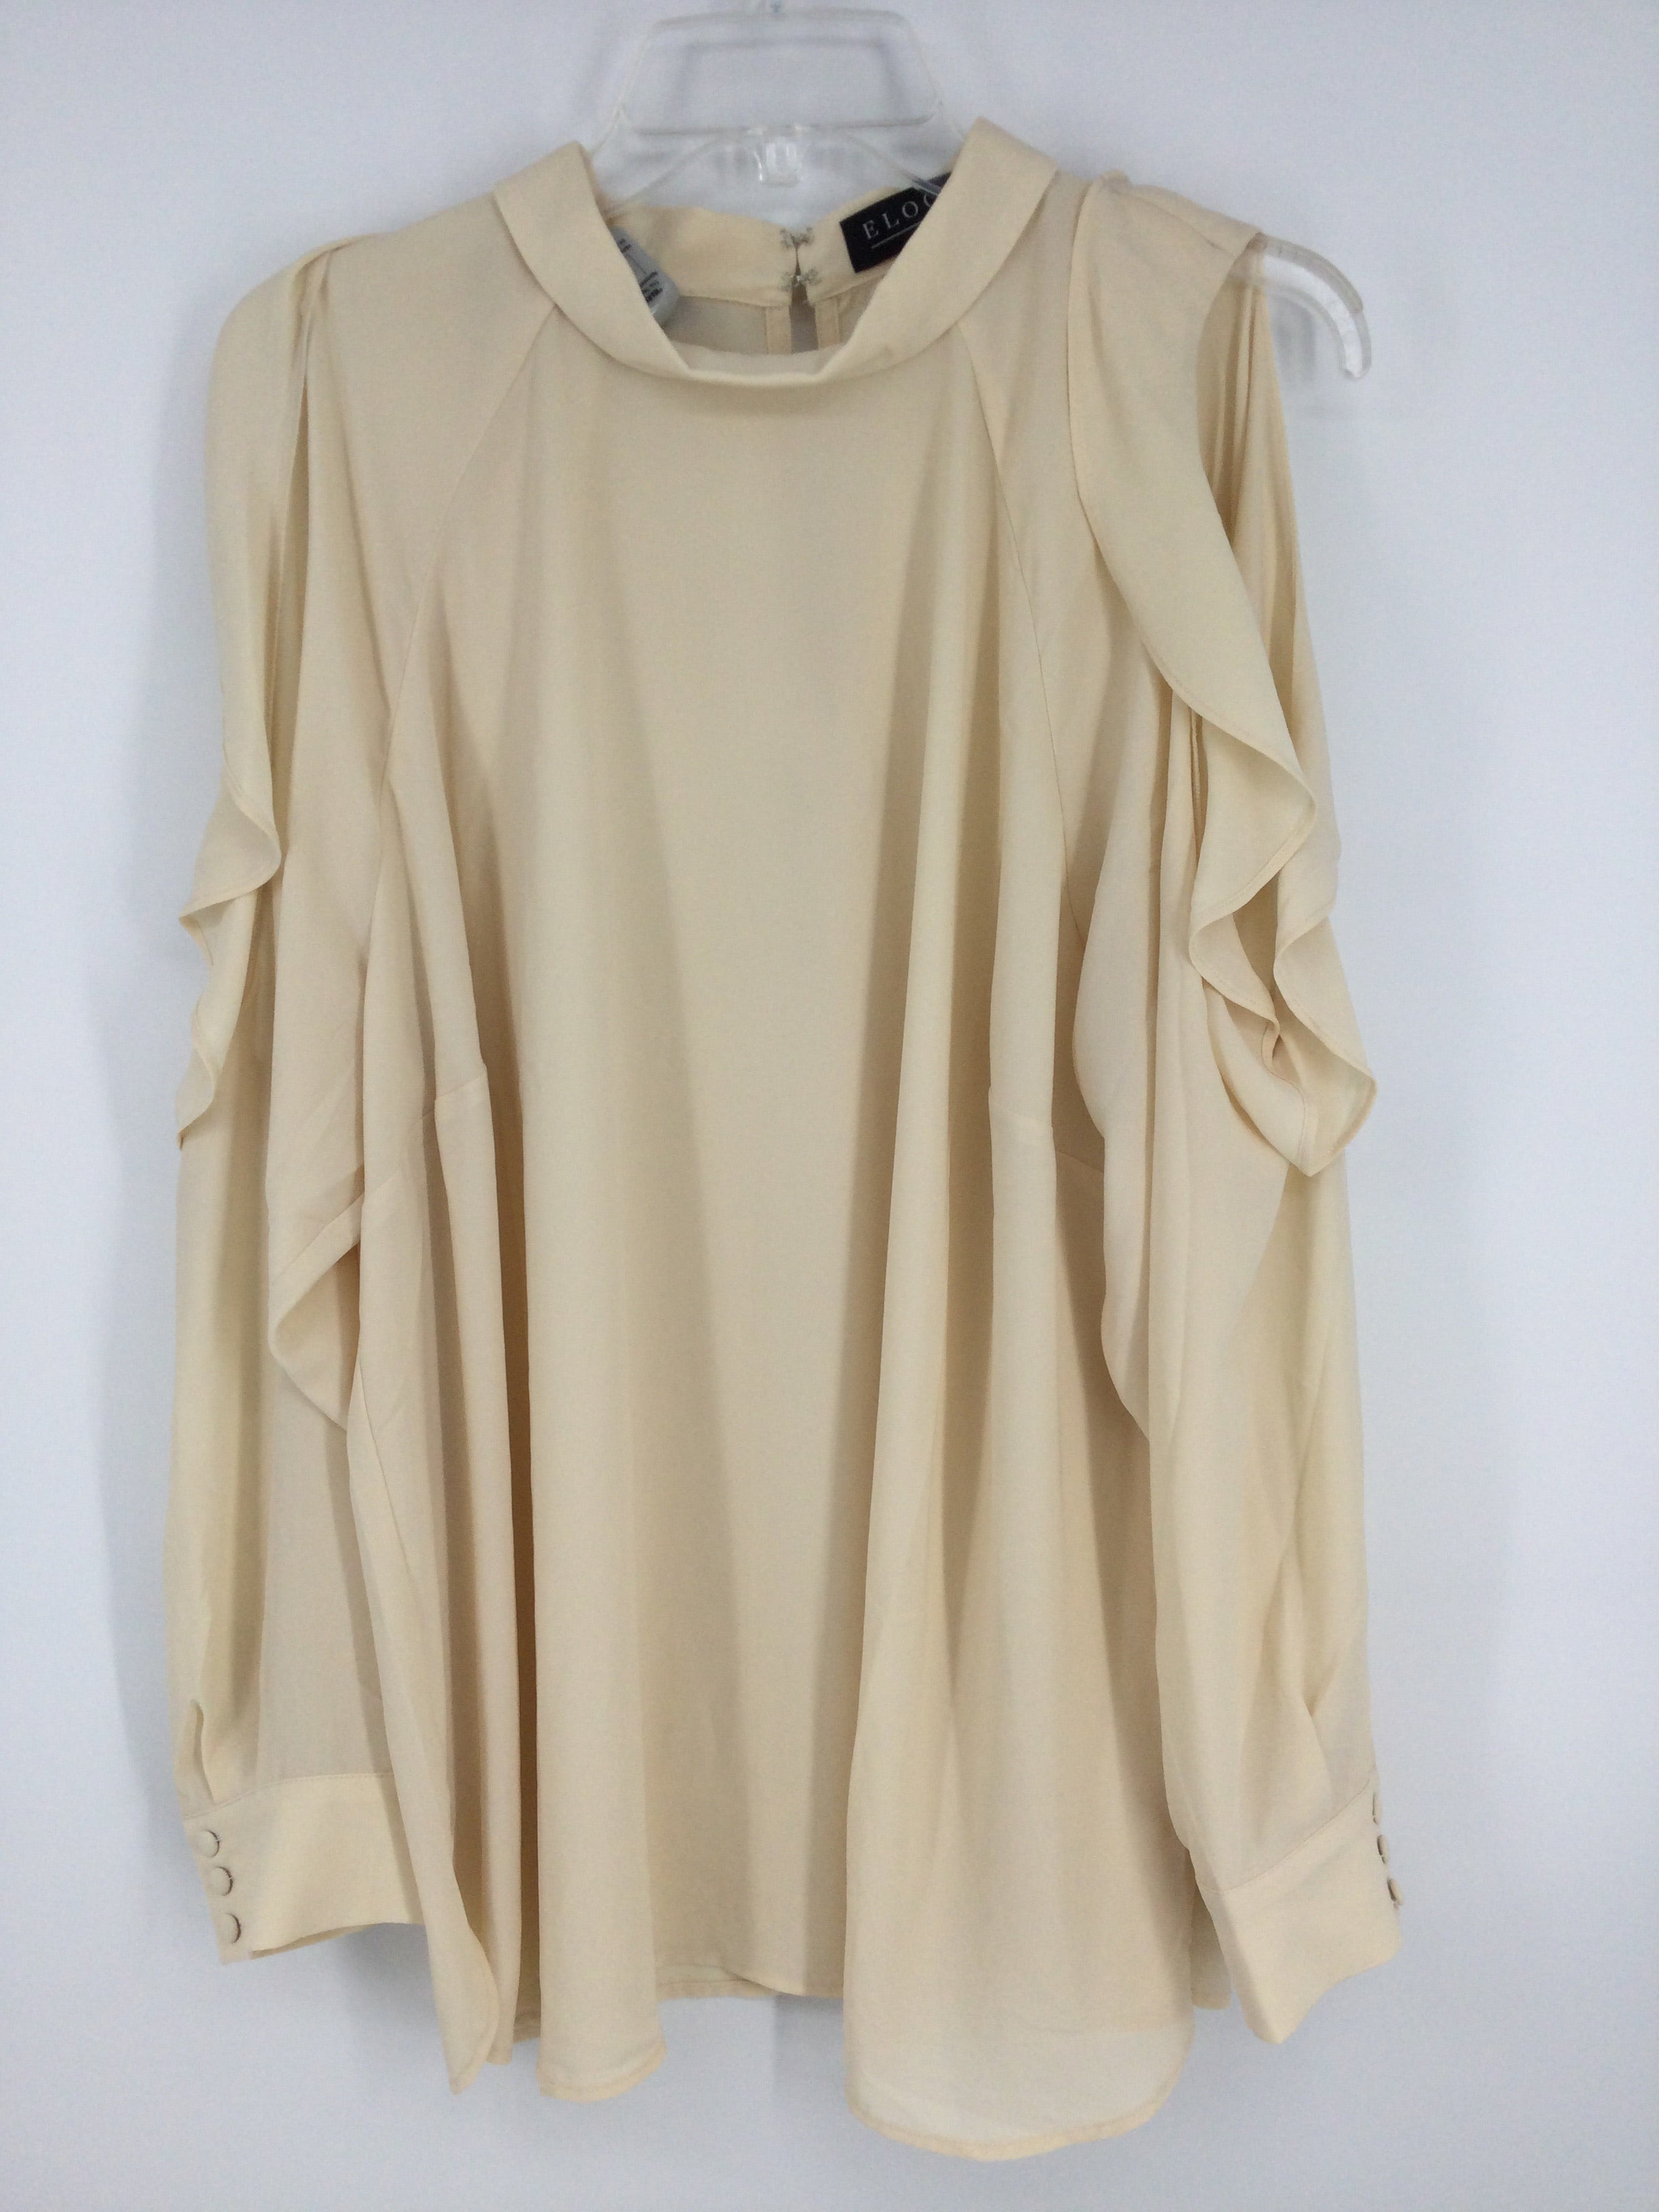 Primary Photo - Brand: ELOQUII <br>Style: TOP Long Sleeve <br>Color: PEACH <br>Size: 20 <br>Other Info: 1X <br>SKU: 128-4287-59119